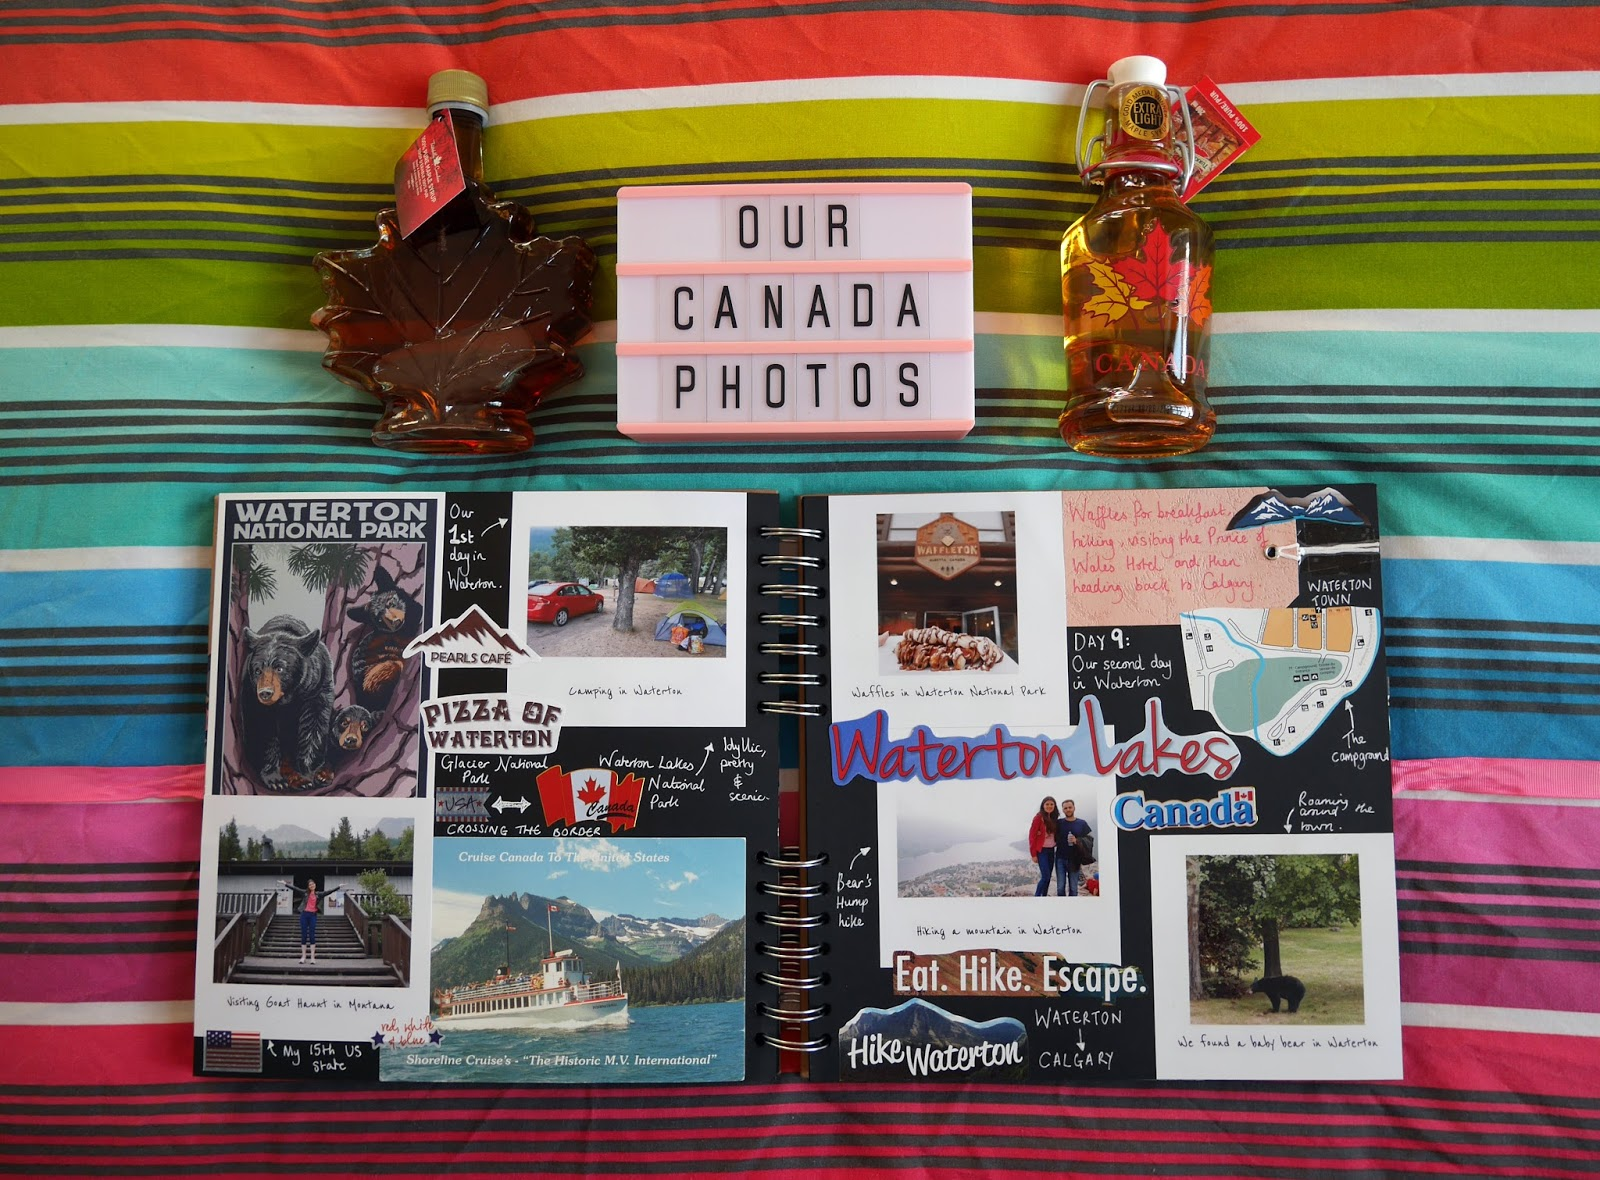 Canada travel scrapbook pages 11-12 (Waterton Lakes National Park) featuring Printiki's retro prints